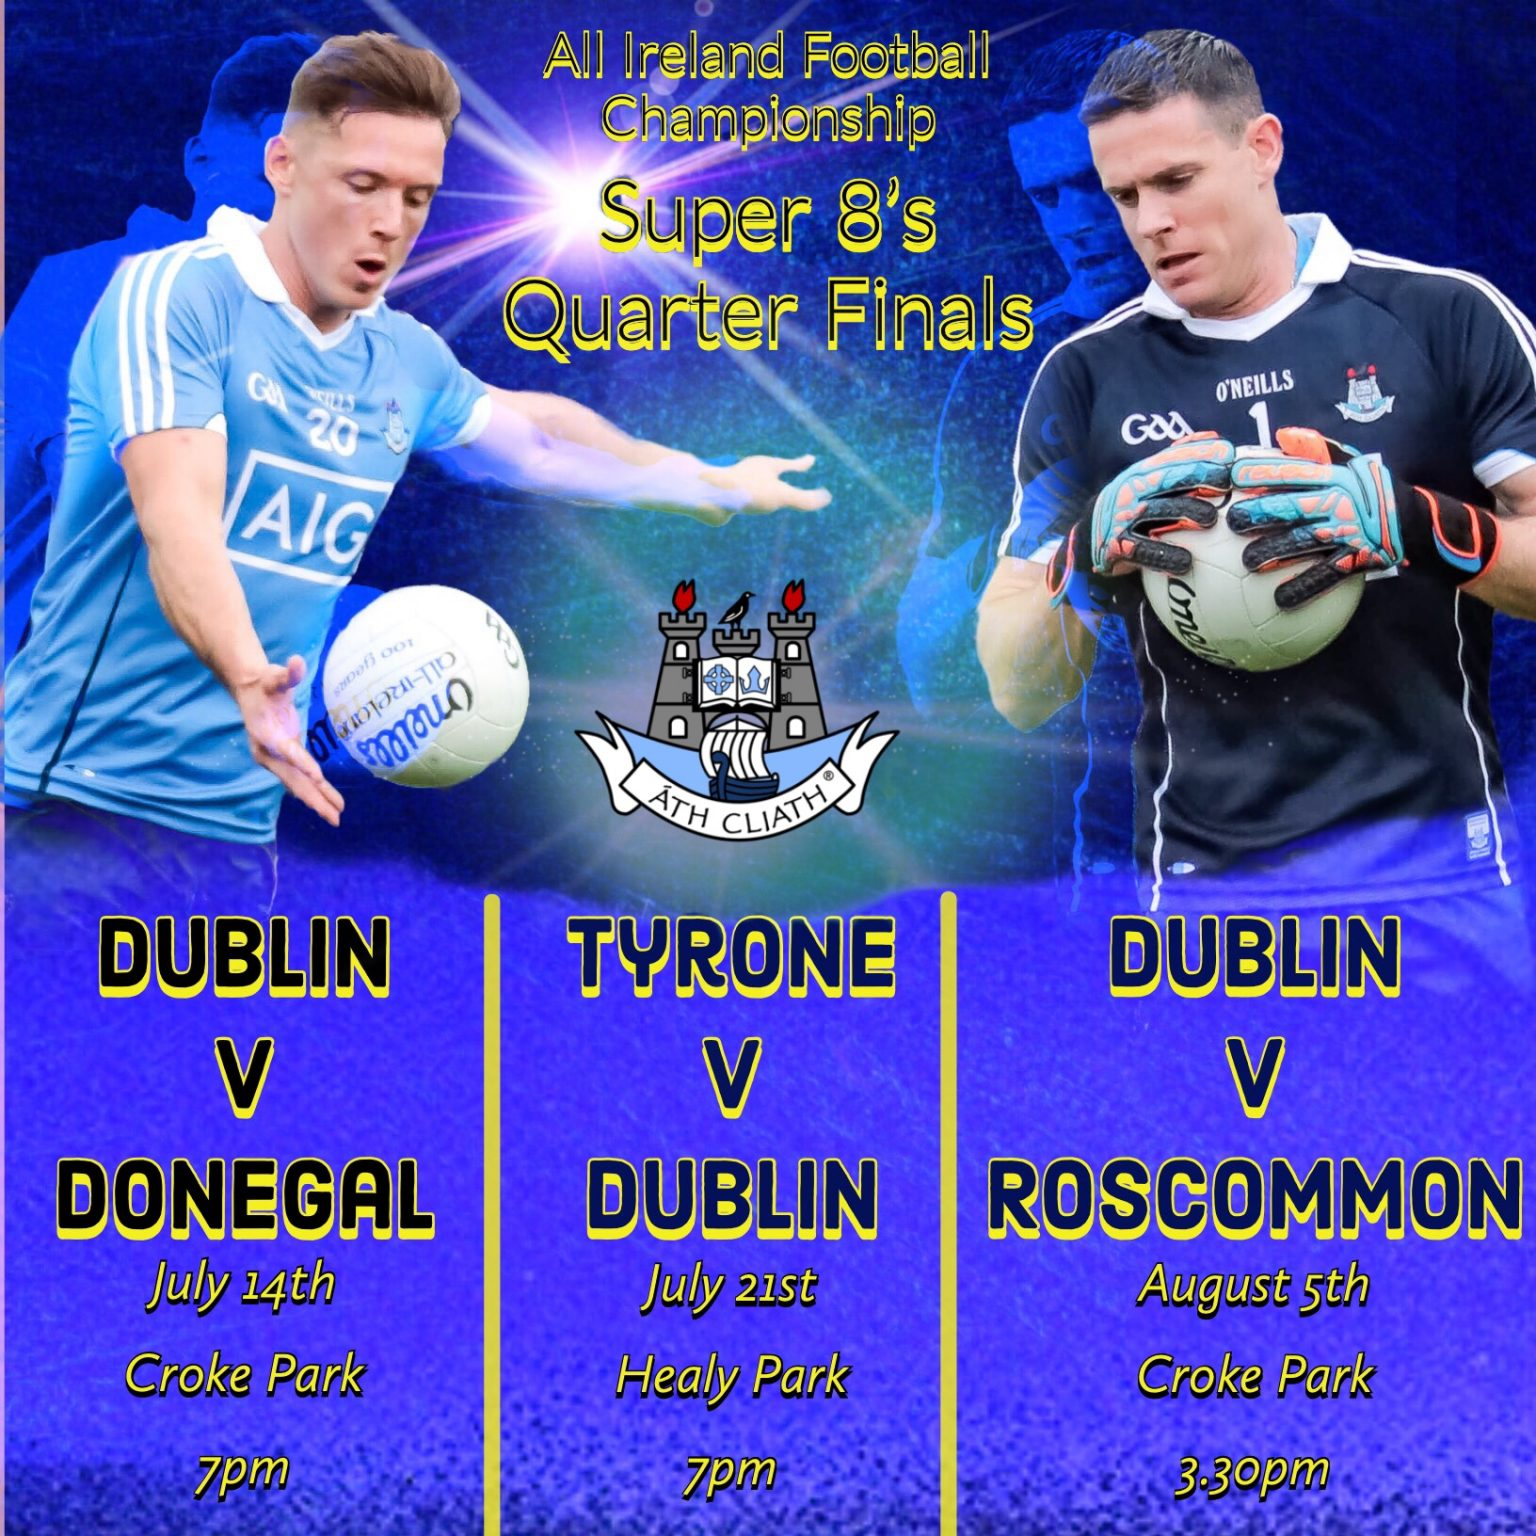 Promotional poster with the details of the venues and throw in time for Dublin's upcoming Super 8's games with two Dublin players one in a sky blue jersey holding a white ball and the other in a navy jersey holding a white ball